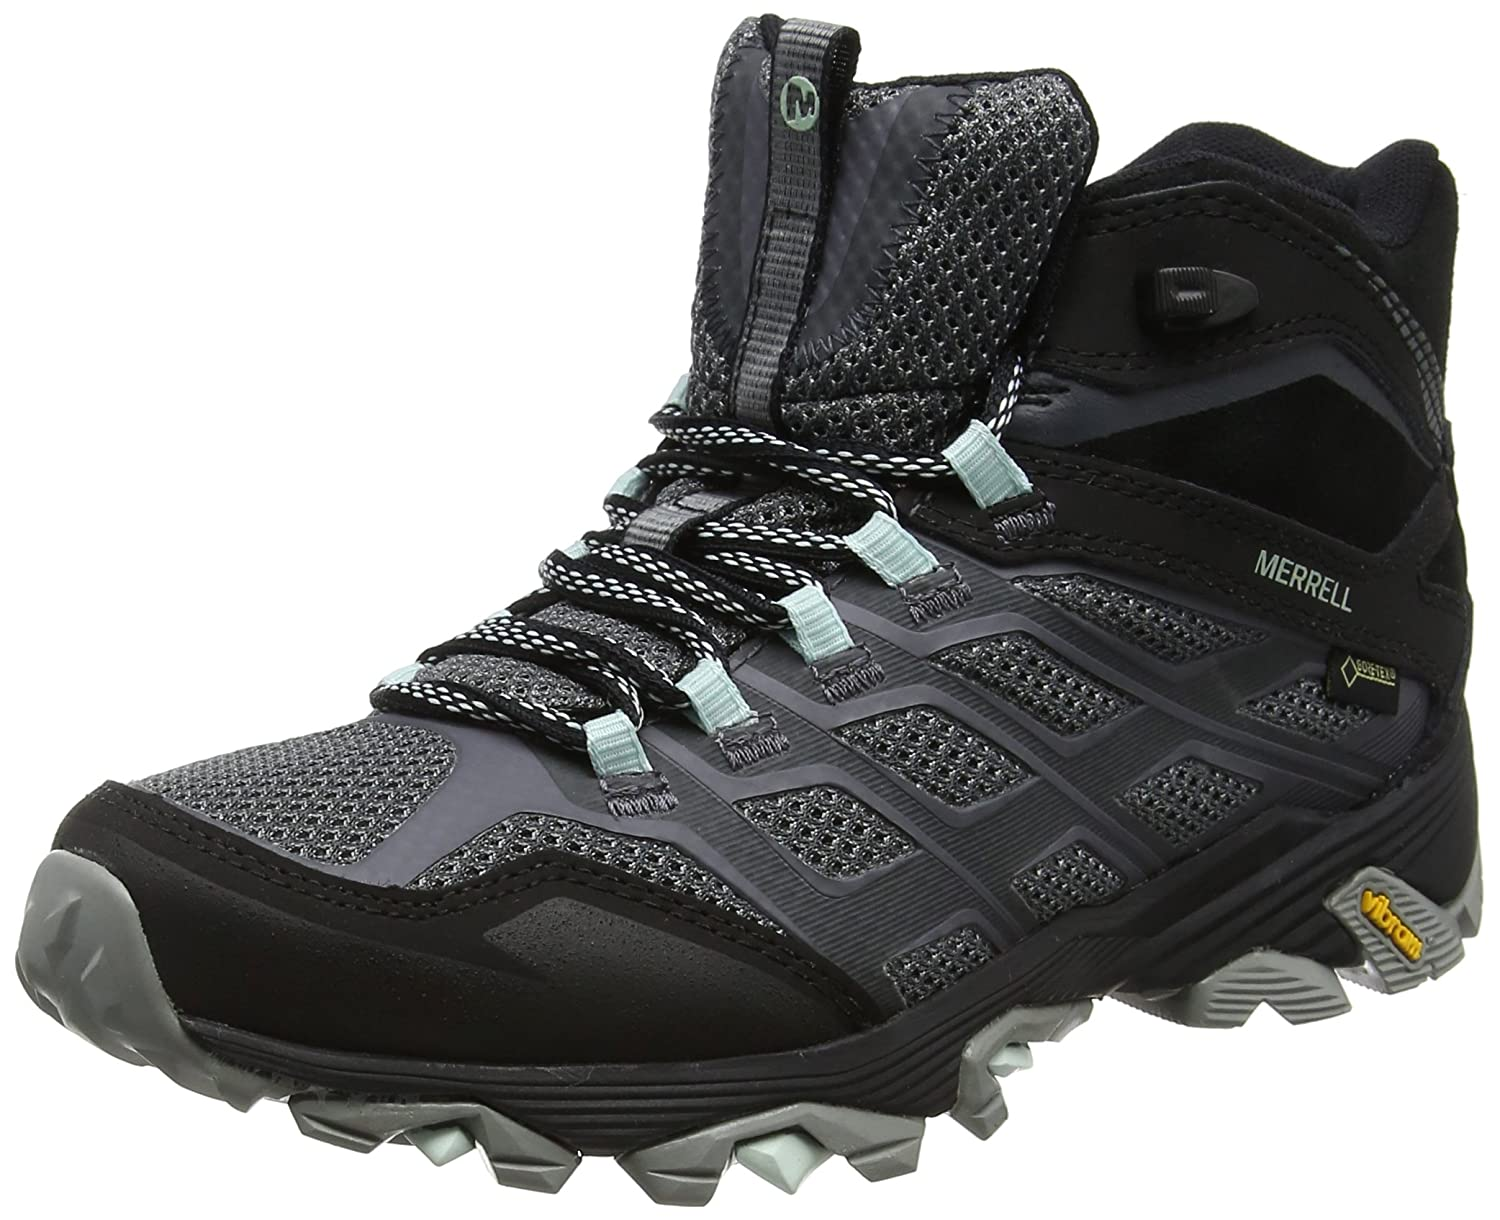 43e6cc3affa Merrell Women's Moab FST Mid Gore-tex High Rise Hiking Boots: Amazon.co.uk:  Shoes & Bags